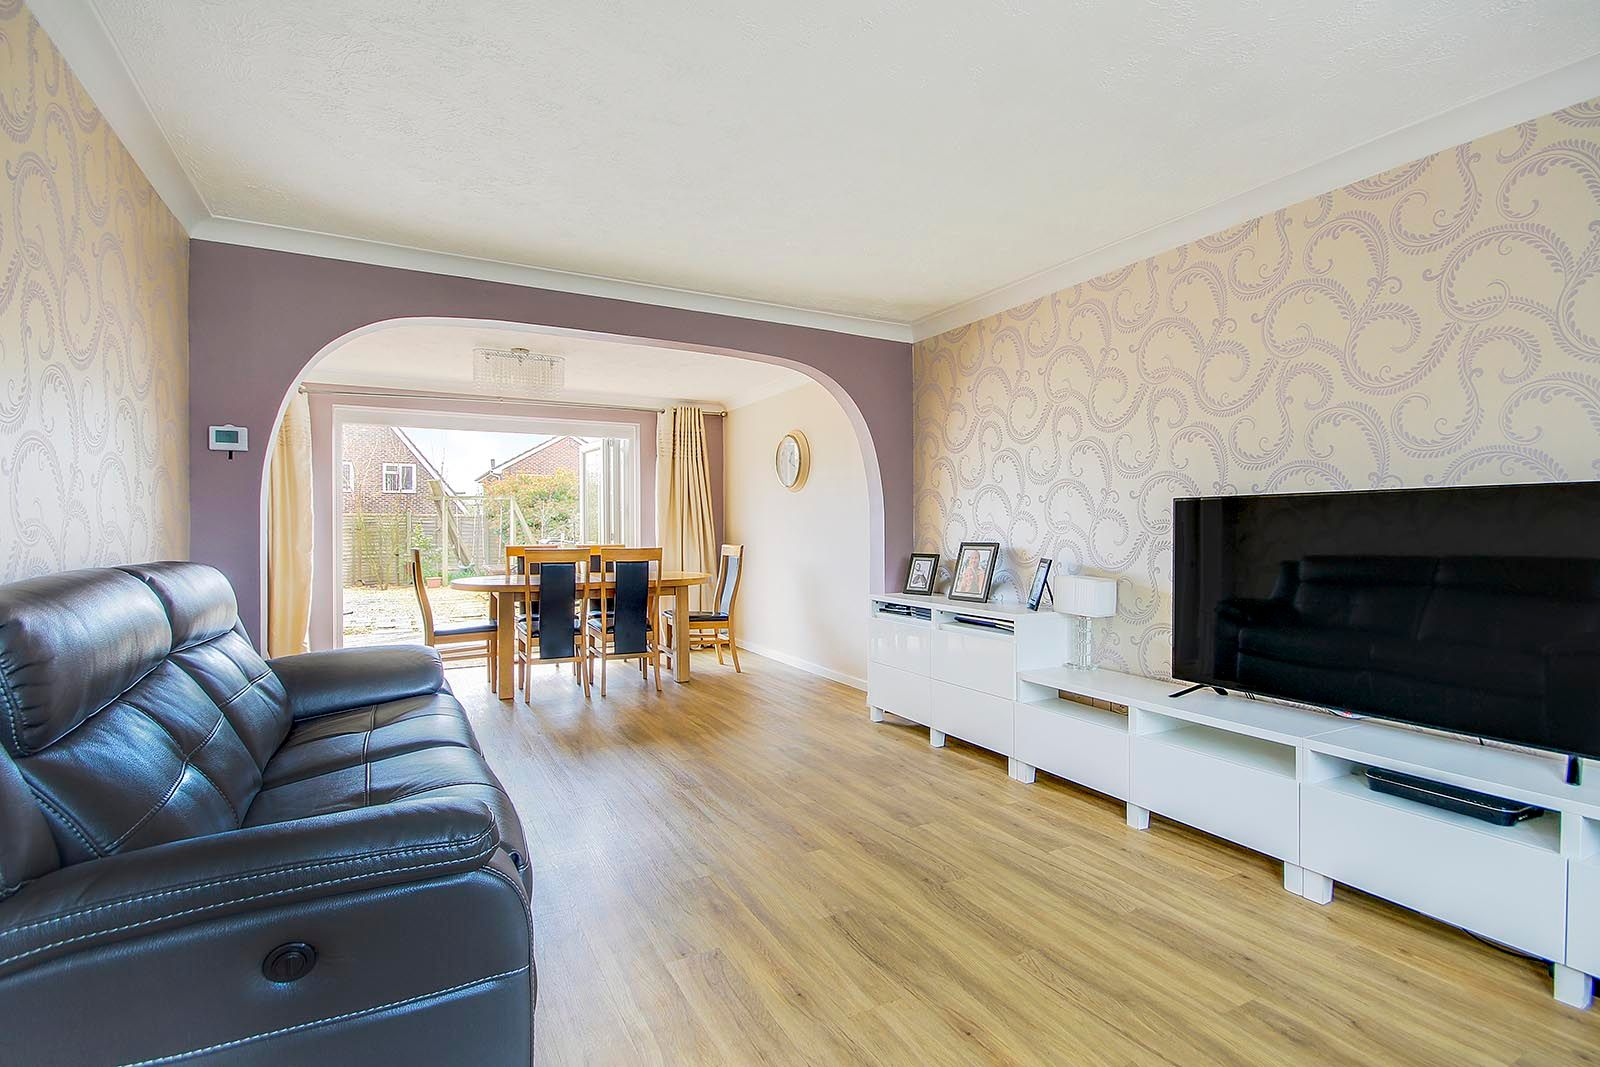 3 bed house for sale in Woodlands Close (COMP AUG 19)  - Property Image 3